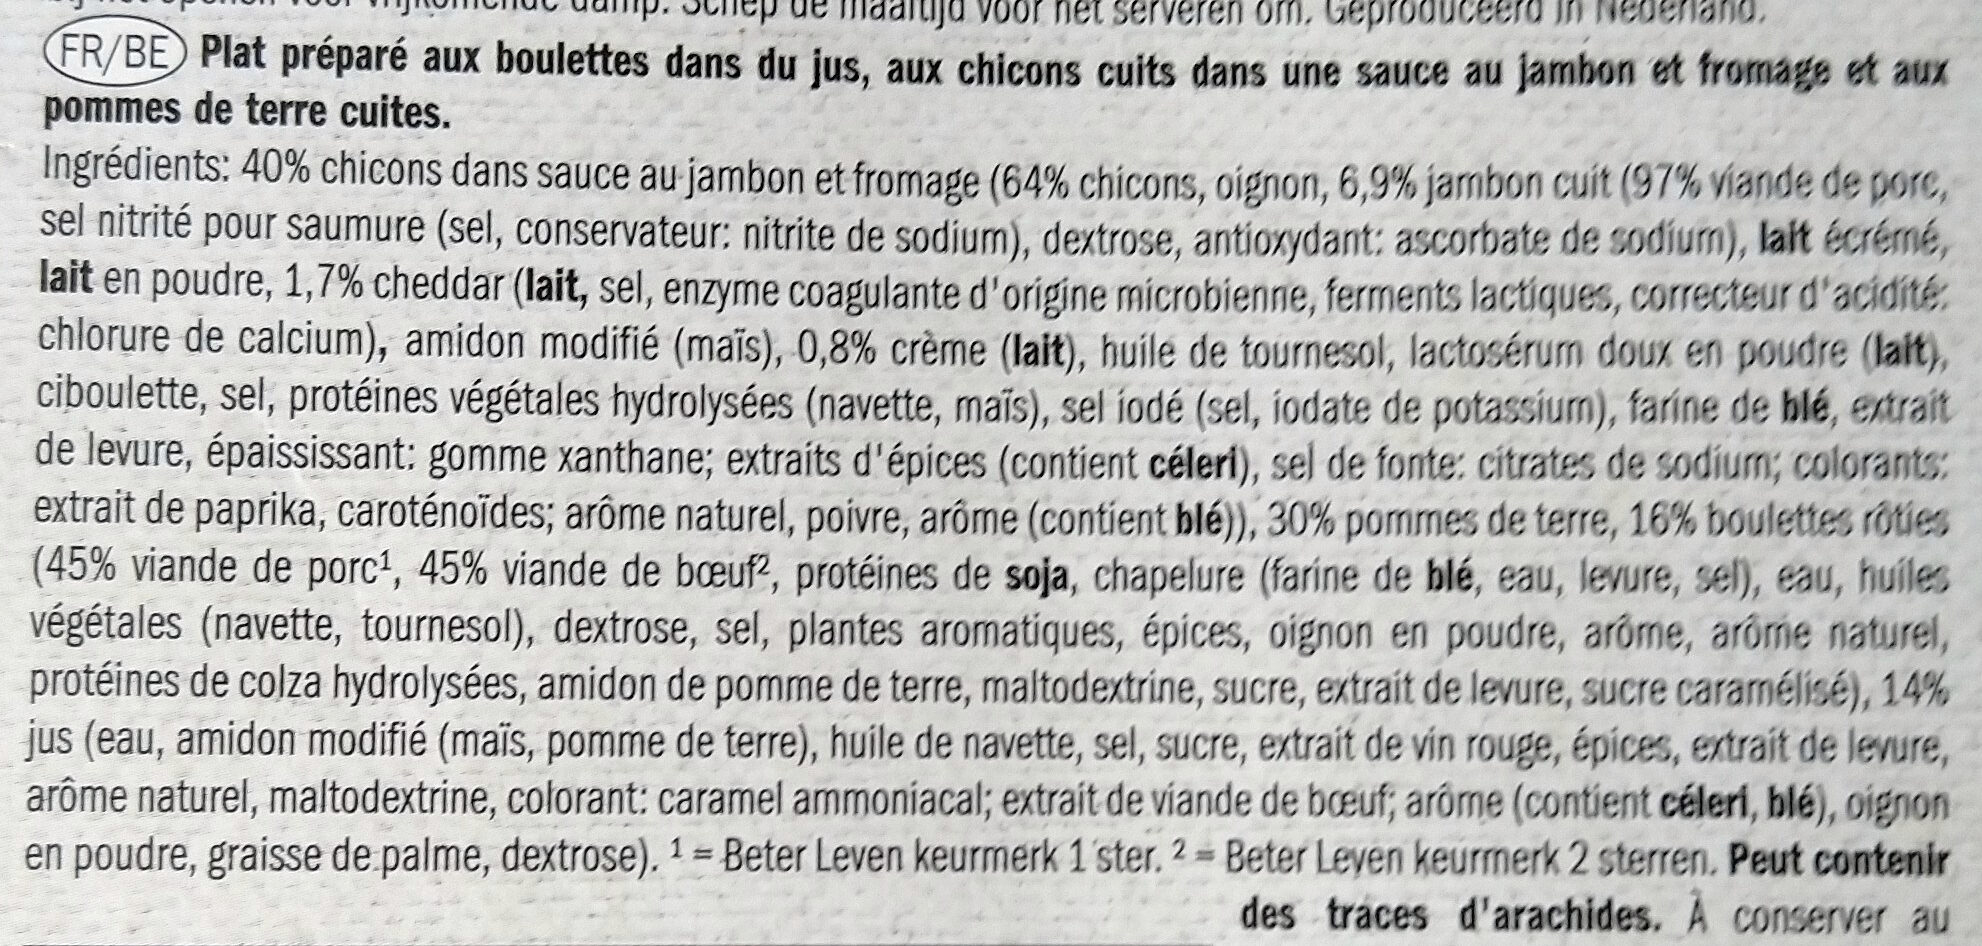 Boulettes Chicons sauce jambon fromage - Ingredients